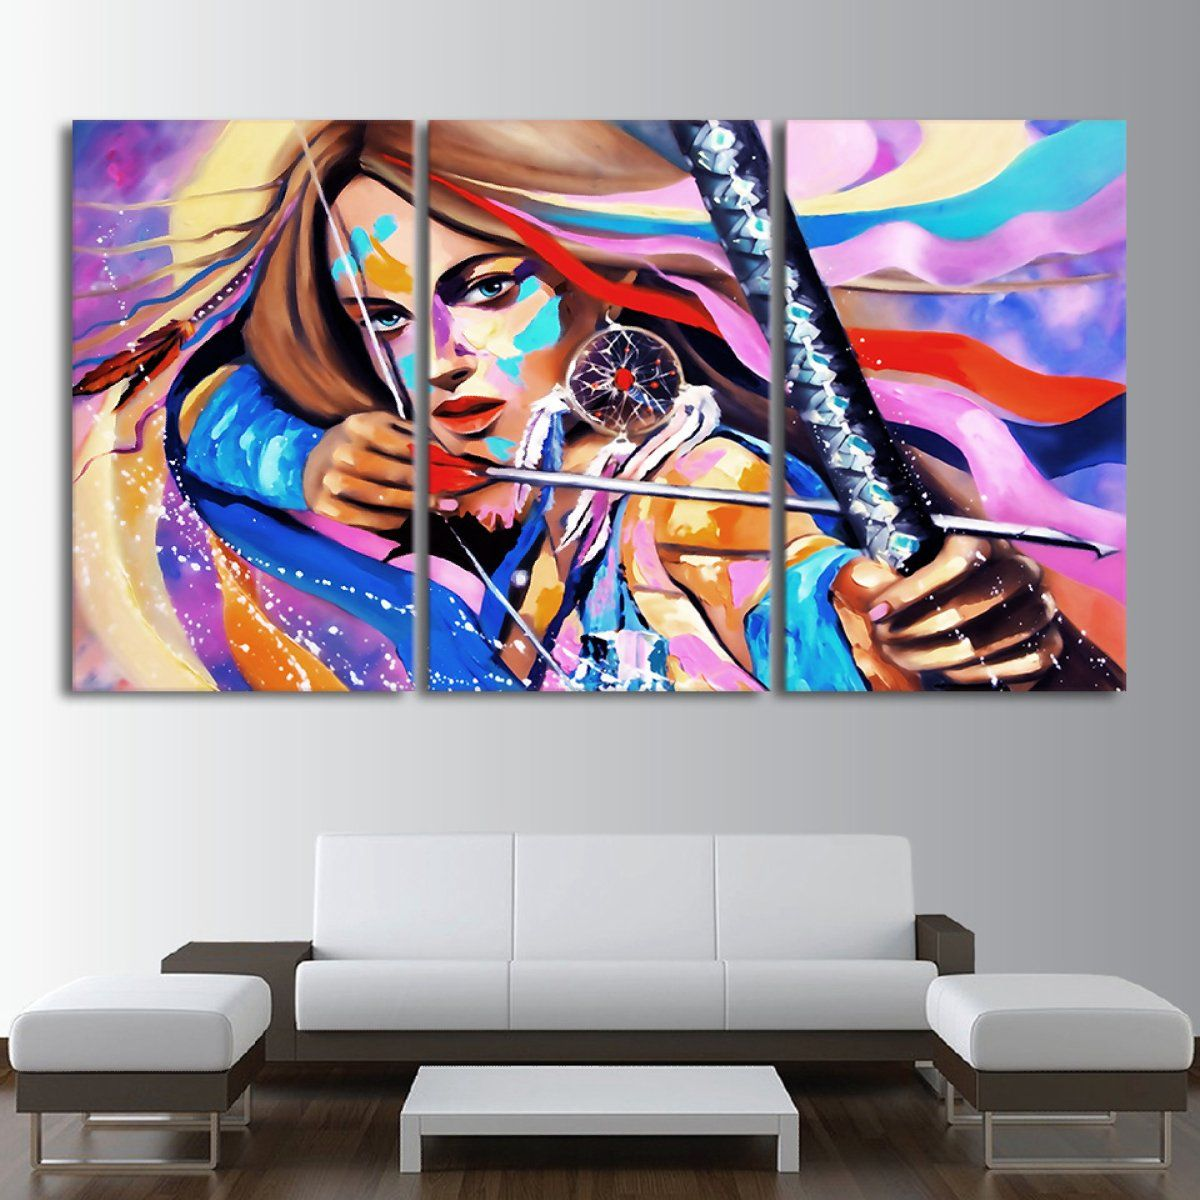 living room art prints%0A Style  ModernForm  CombinedMaterial  CanvasBrand Name  ArtsailingType   Canvas PrintingsFrame  YesModel Number  YesTechnics  Spray PaintingSubj